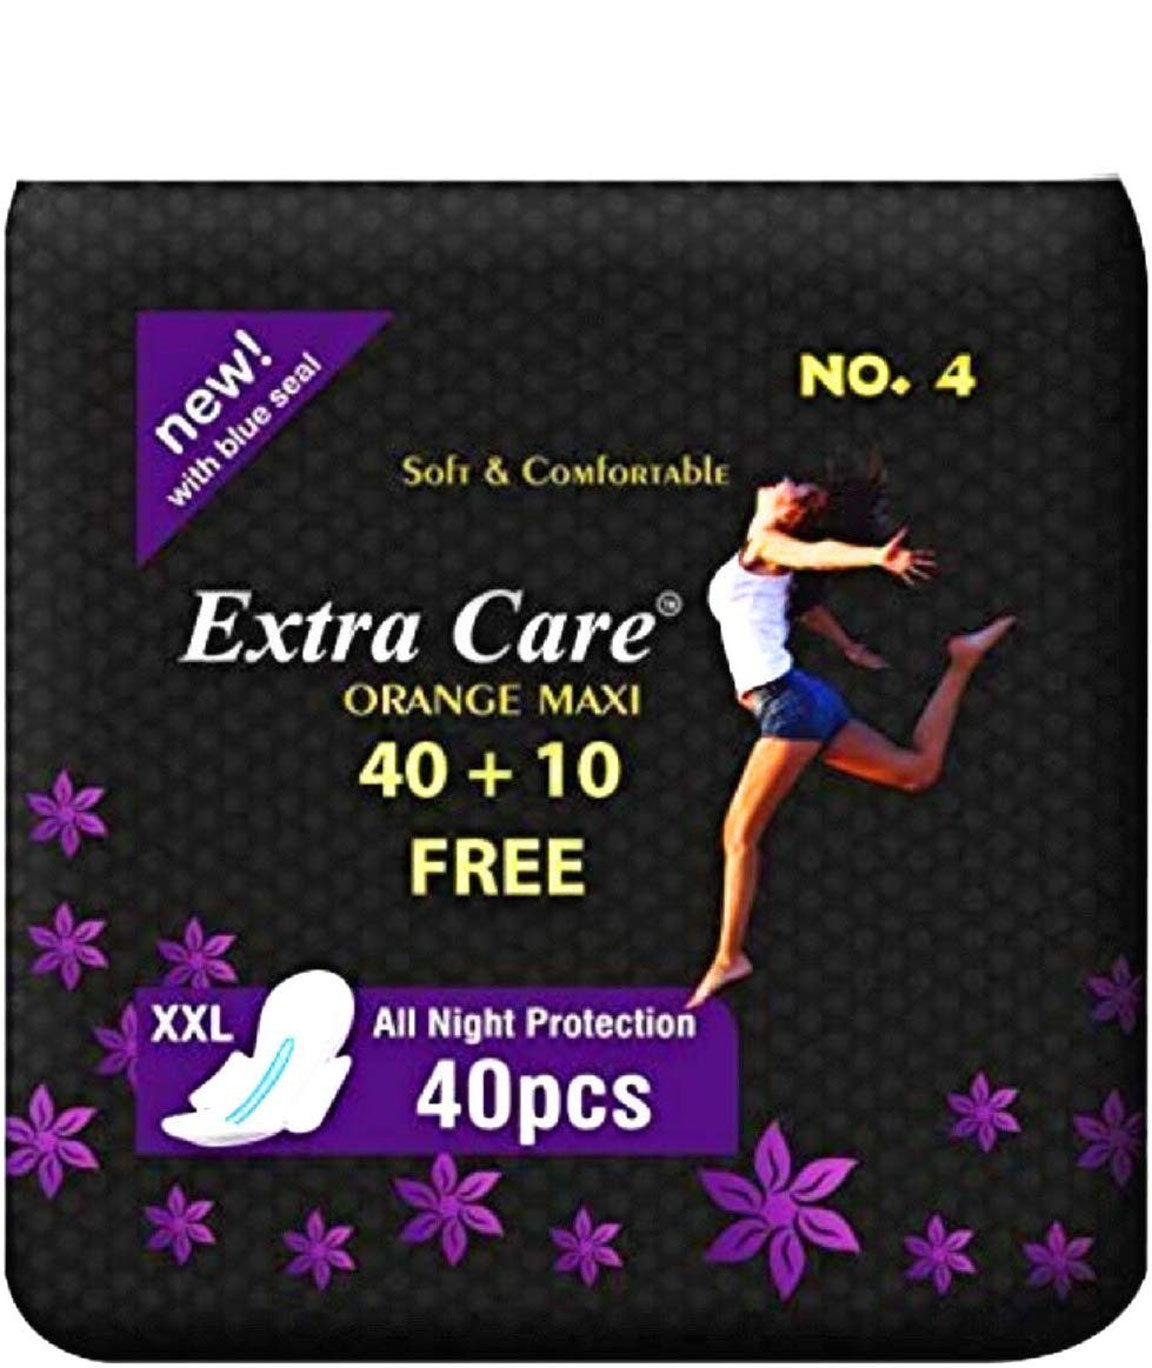 Extra Care Sanitary Napkin with Ultra Thin Cellulase Fiber and Soft Count 40 with 10 Small Pads